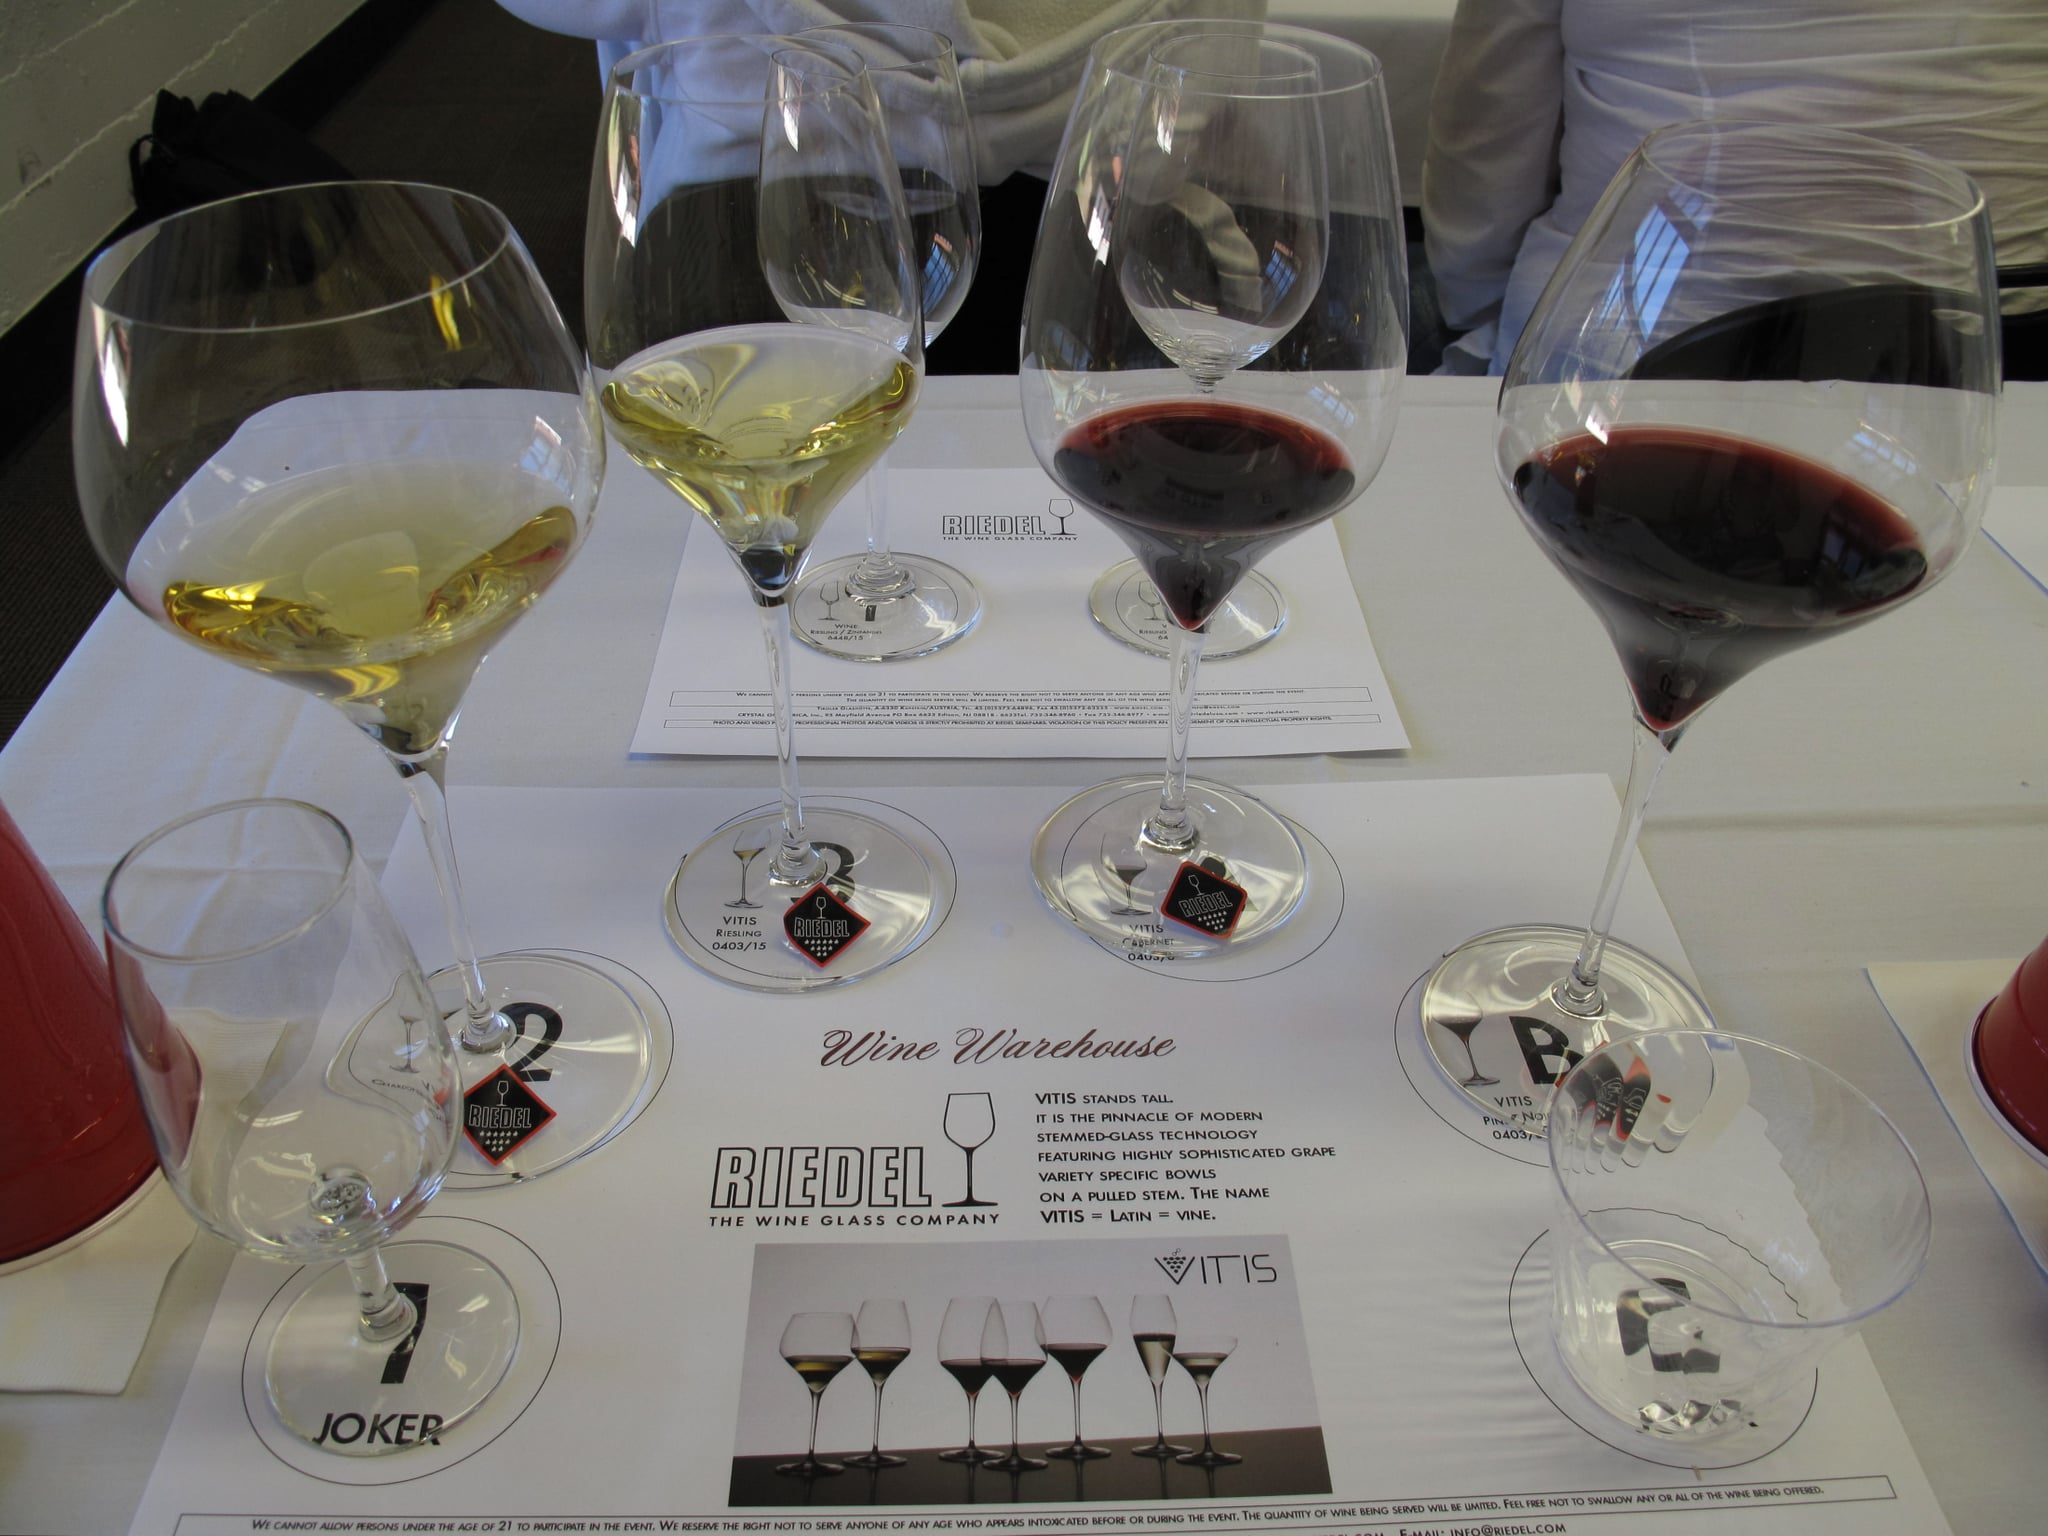 Filled glasses. From left to right, the Riedel Vitis Montrachet/Chardonnay glass, Riesling/Sauvignon Blanc glass, Cabernet glass, and Pinot Noir glass.